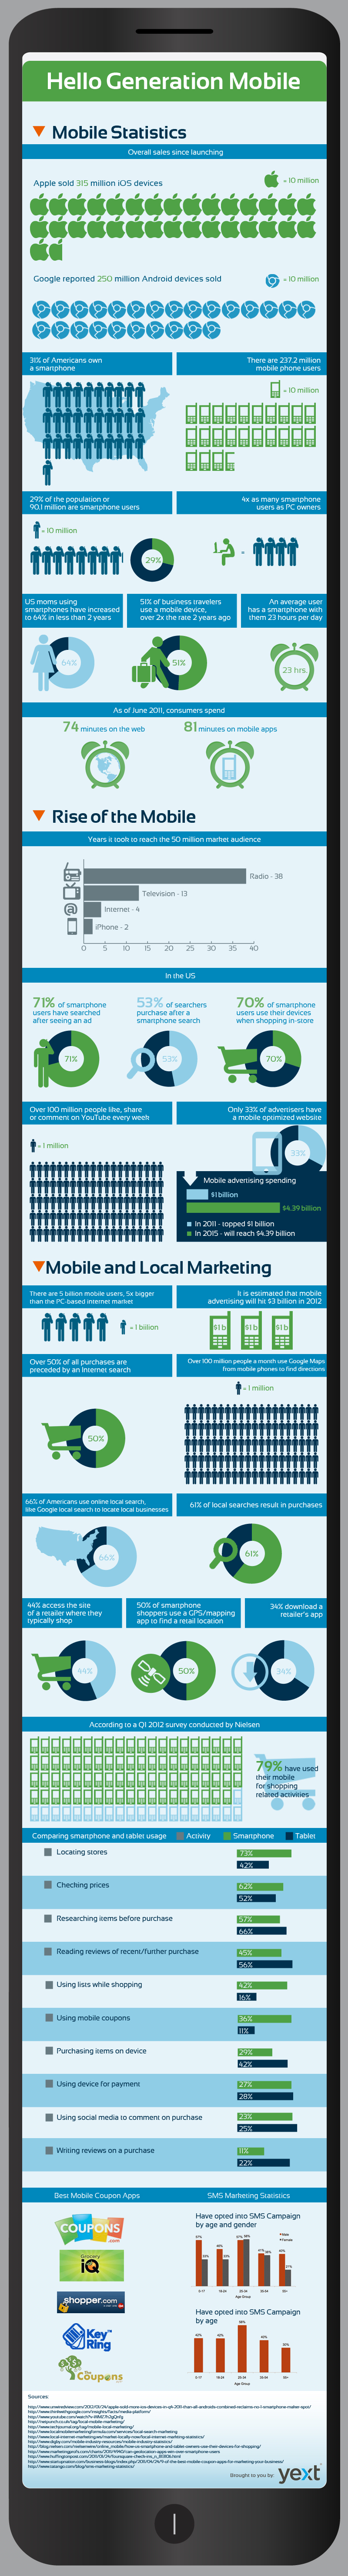 The Importance of Mobile for Local Businesses